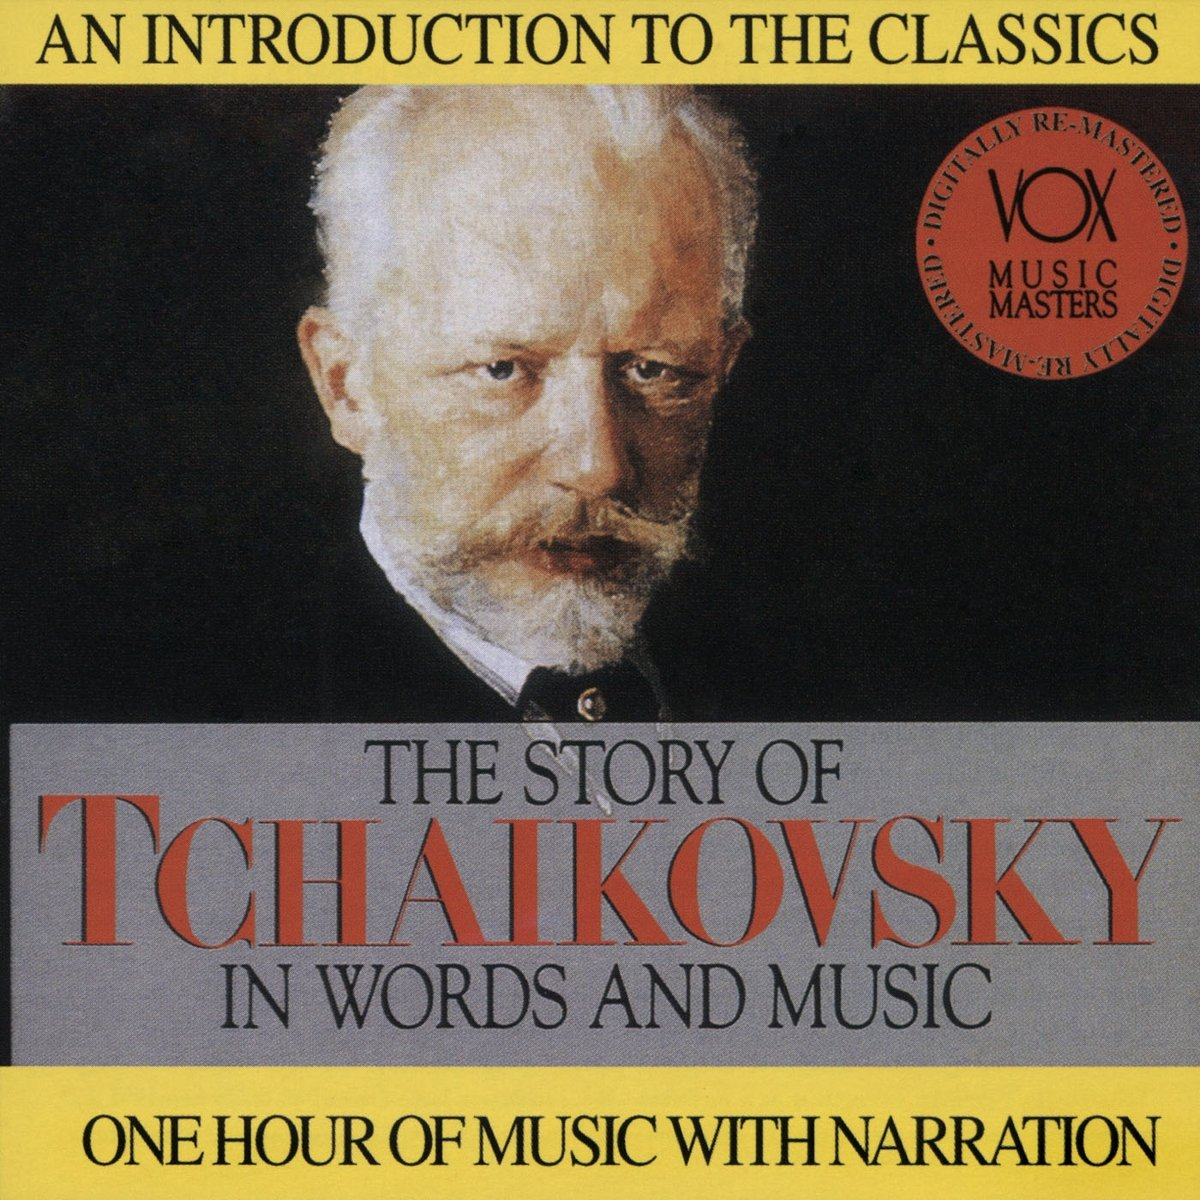 Biography of Tchaikovsky. The story of a great man 79